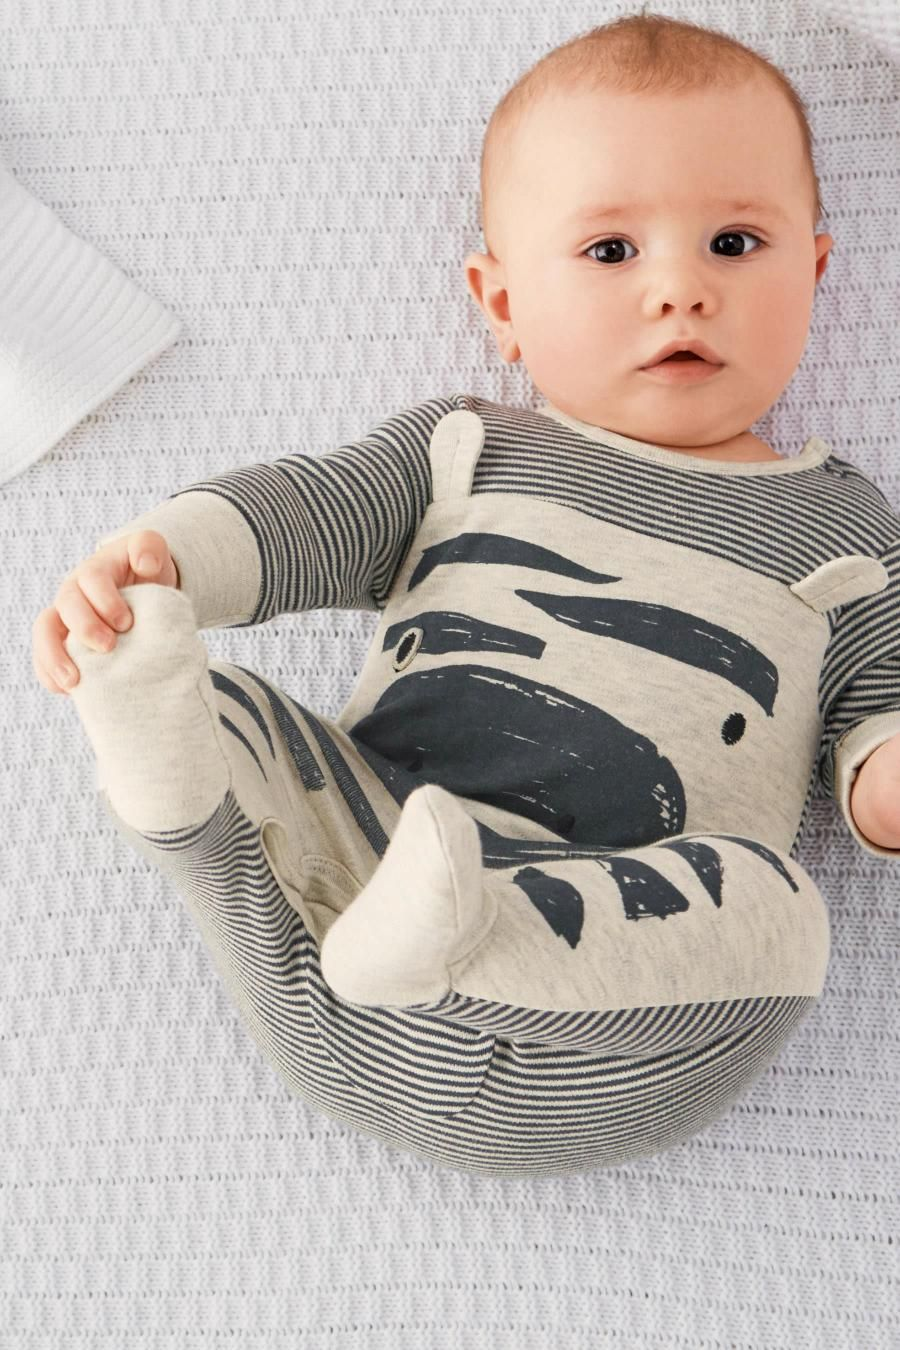 4caaf8954 2017 hot Baby rompers long sleeve cotton jumpsuit baby infant ...